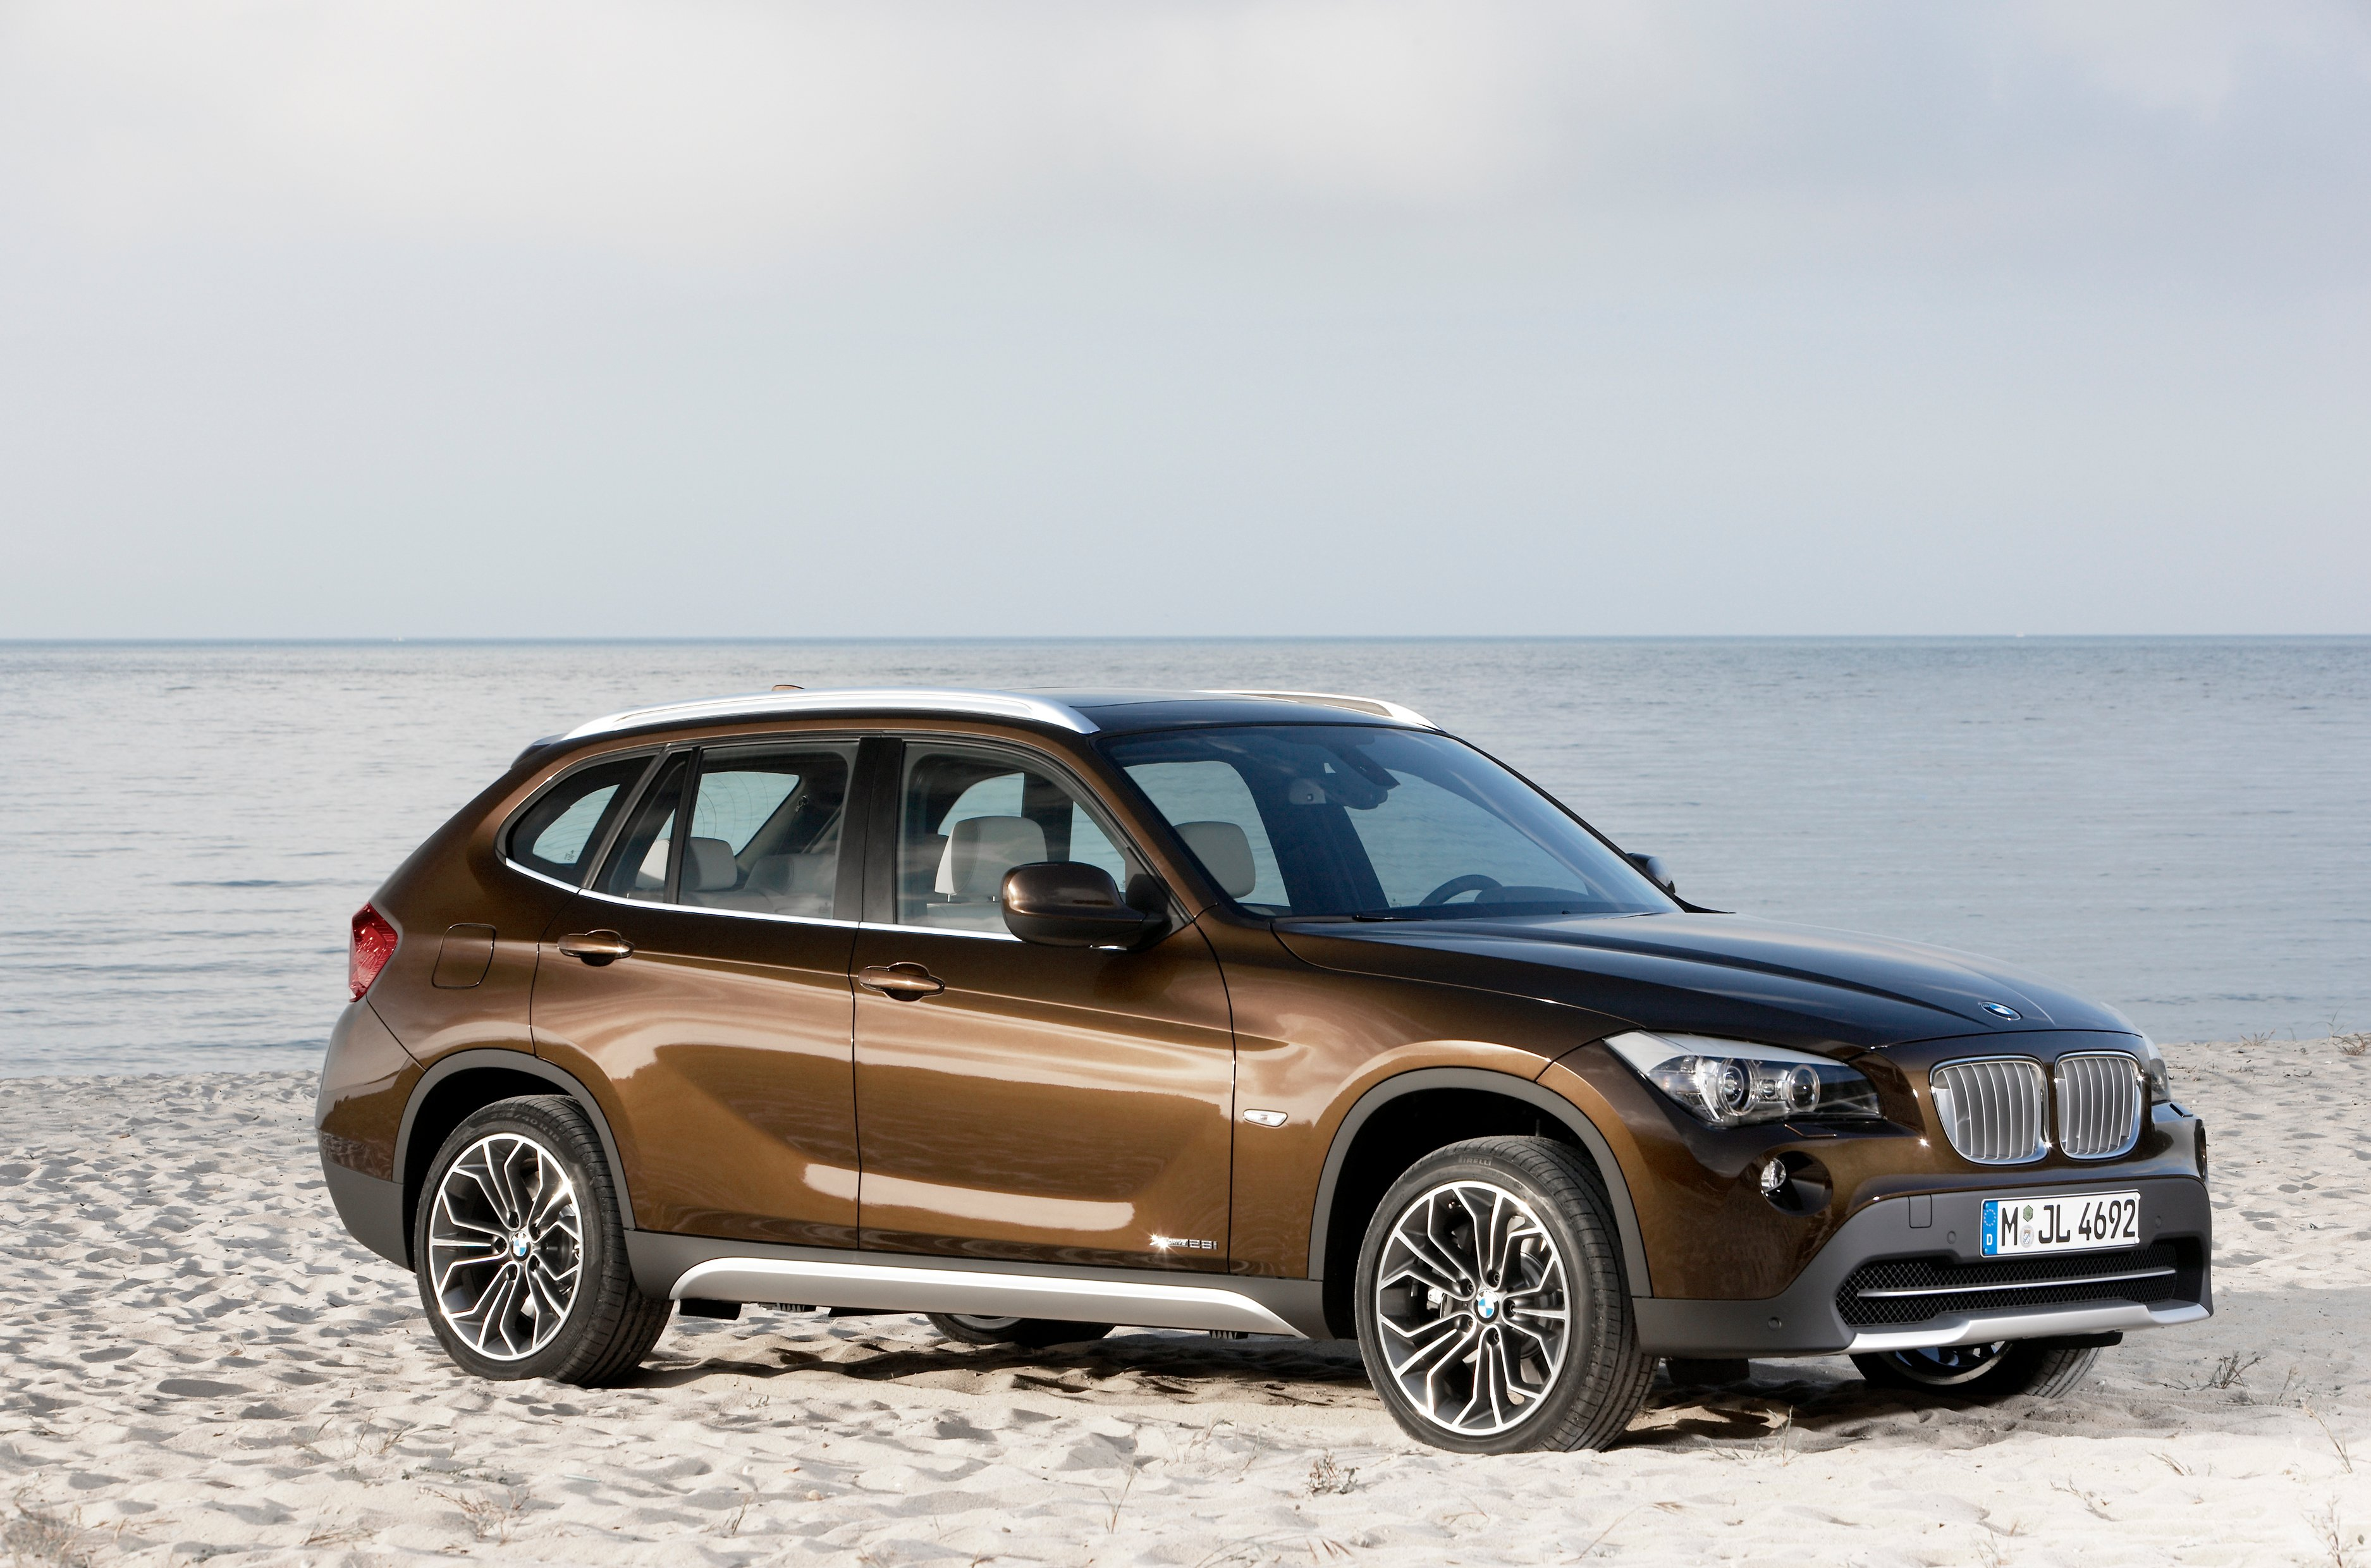 bmw x1 pictures #9